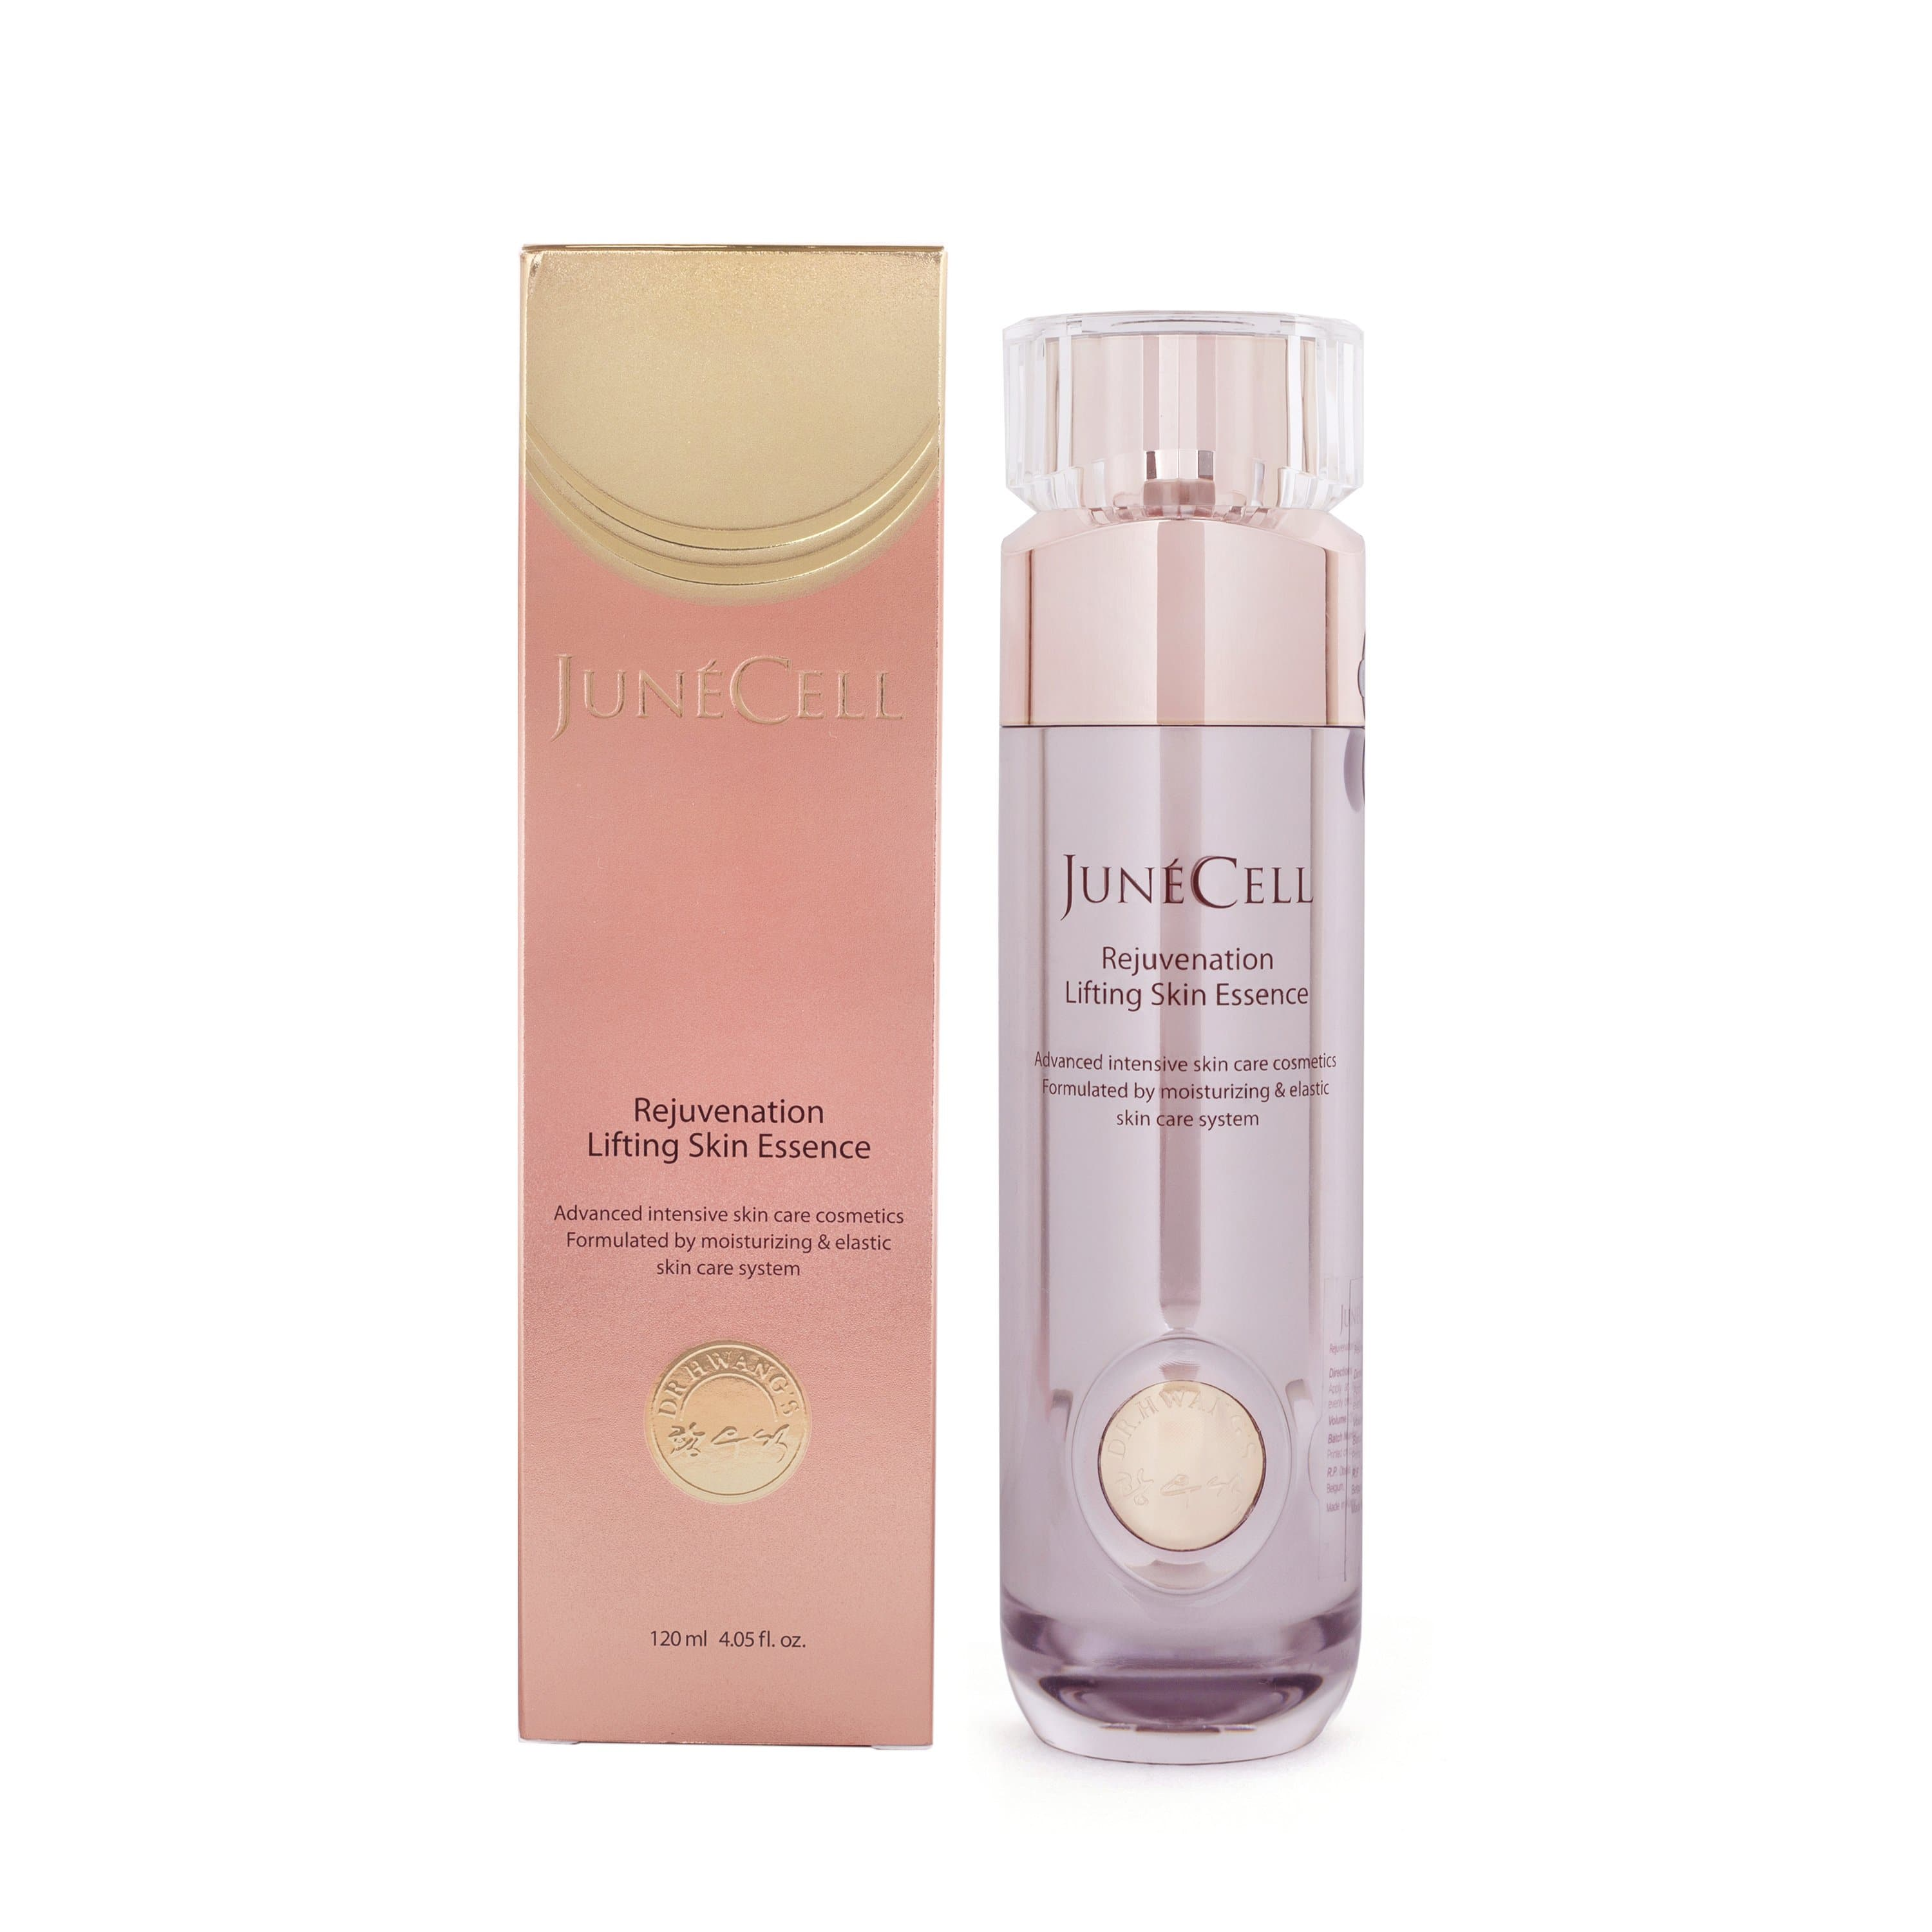 JunéCell Rejuvenation Lifting Skin Essence - Science To Skin